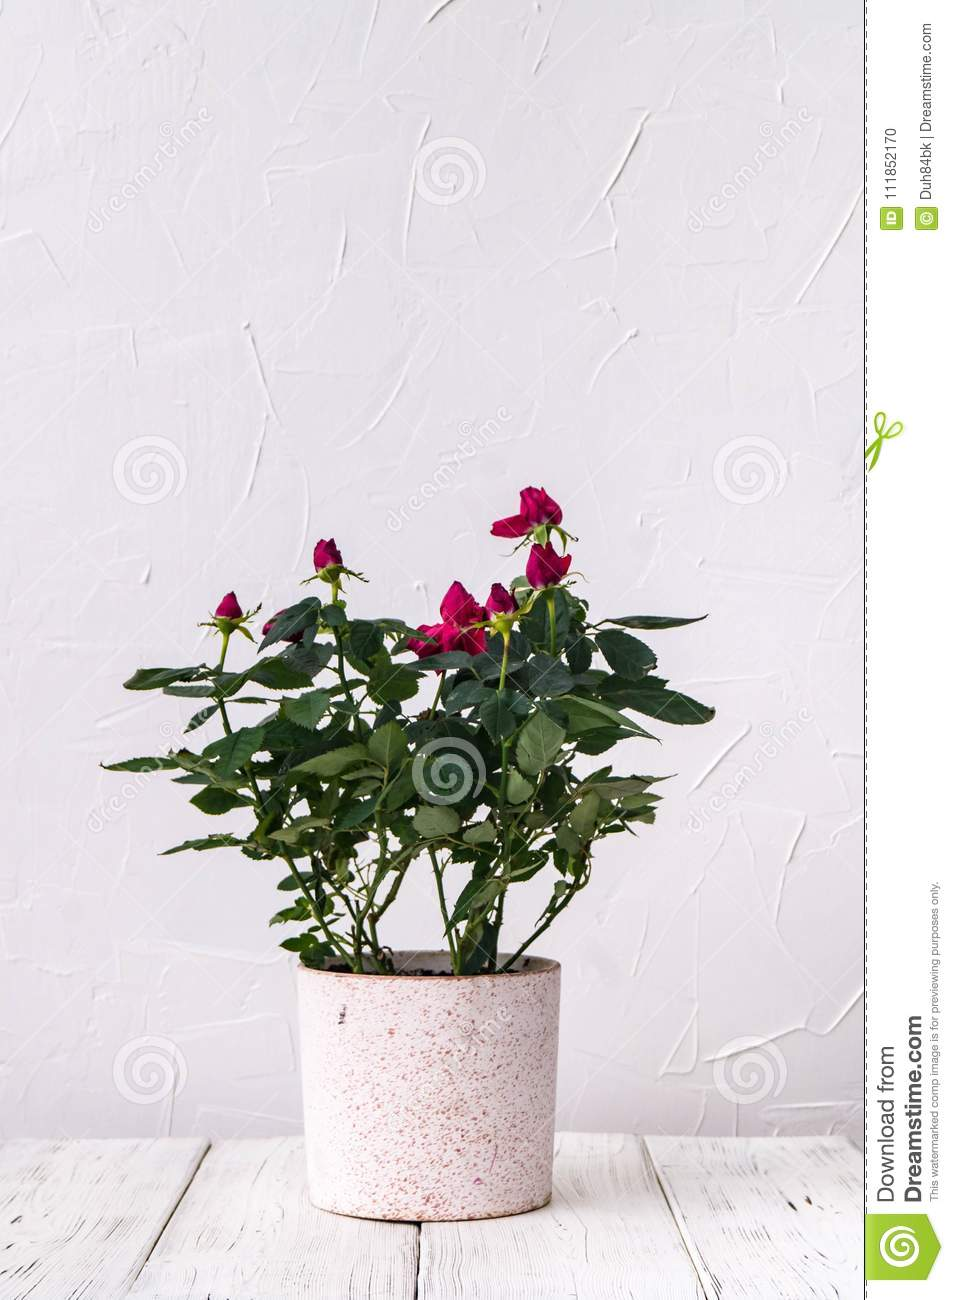 Indoor Plants A Red Rose In A Pot Against A White Wall Background